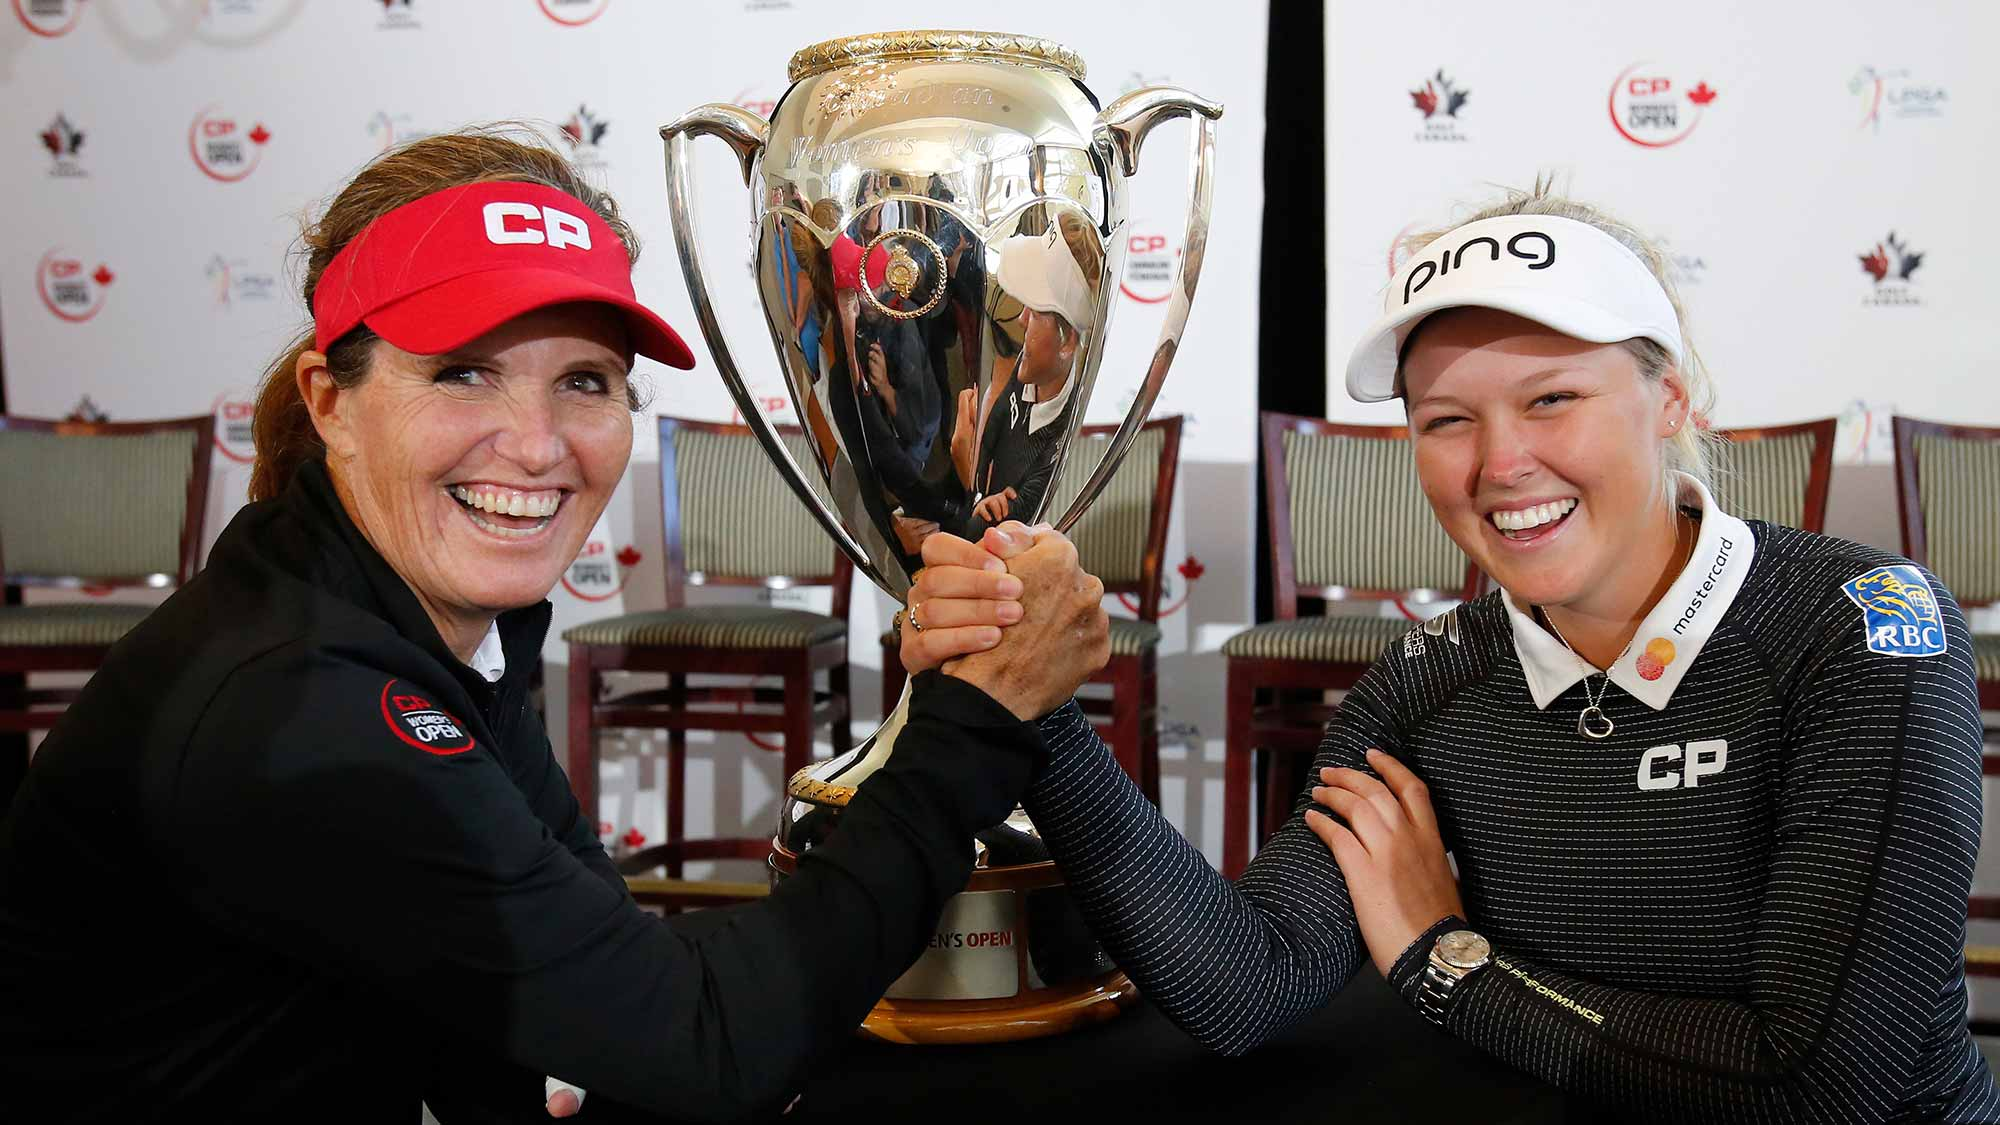 Henderson and Kane Headline Media Day in Canada